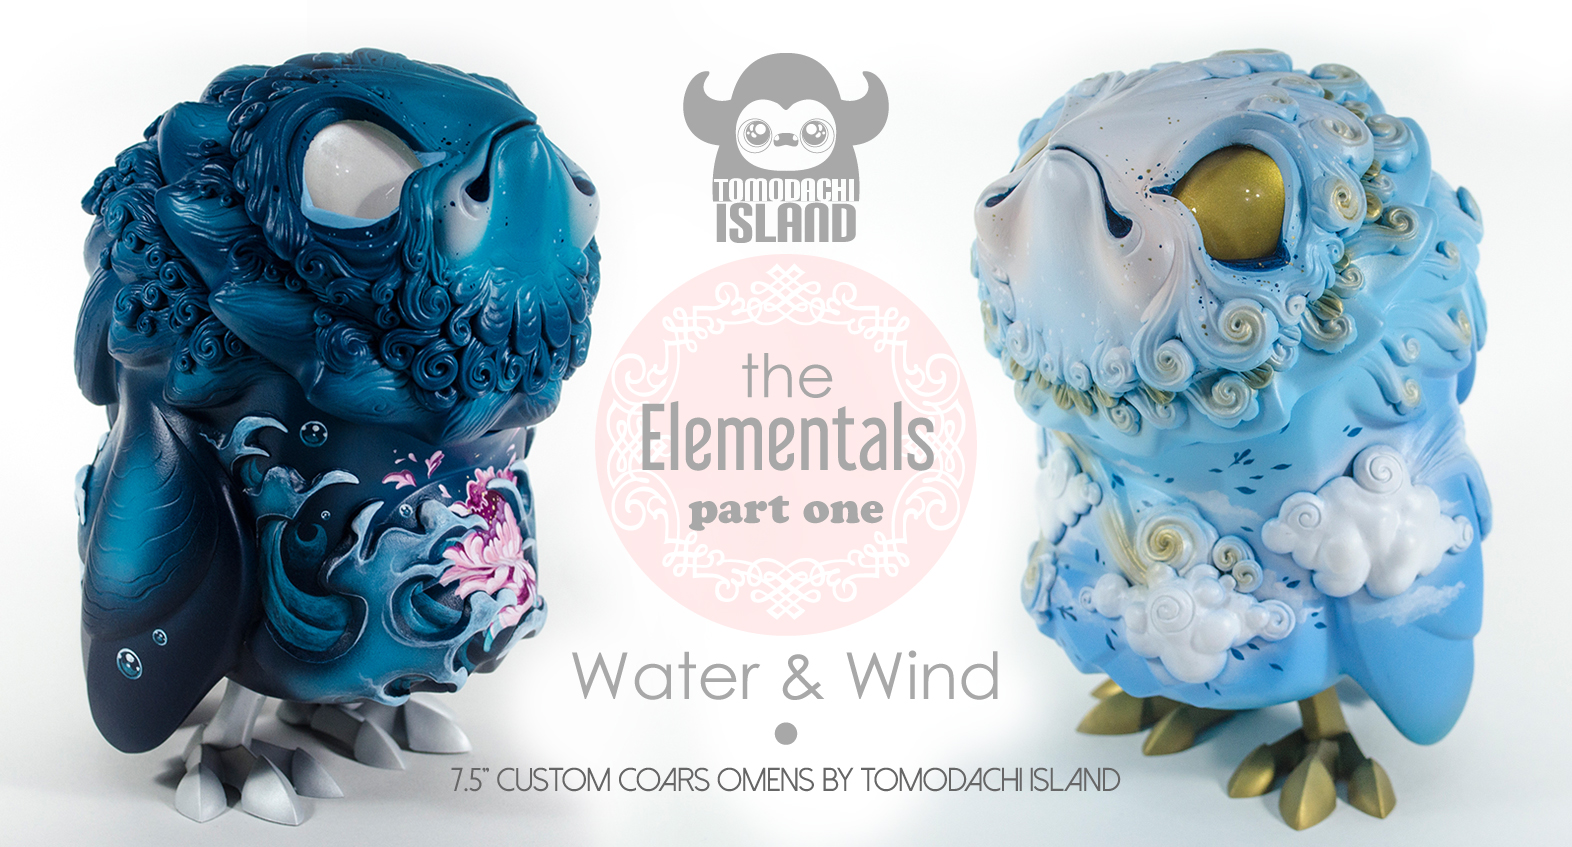 coars_omen_elementals_water_wind_art_toy_tomodachi_island_custom_toy.jpg